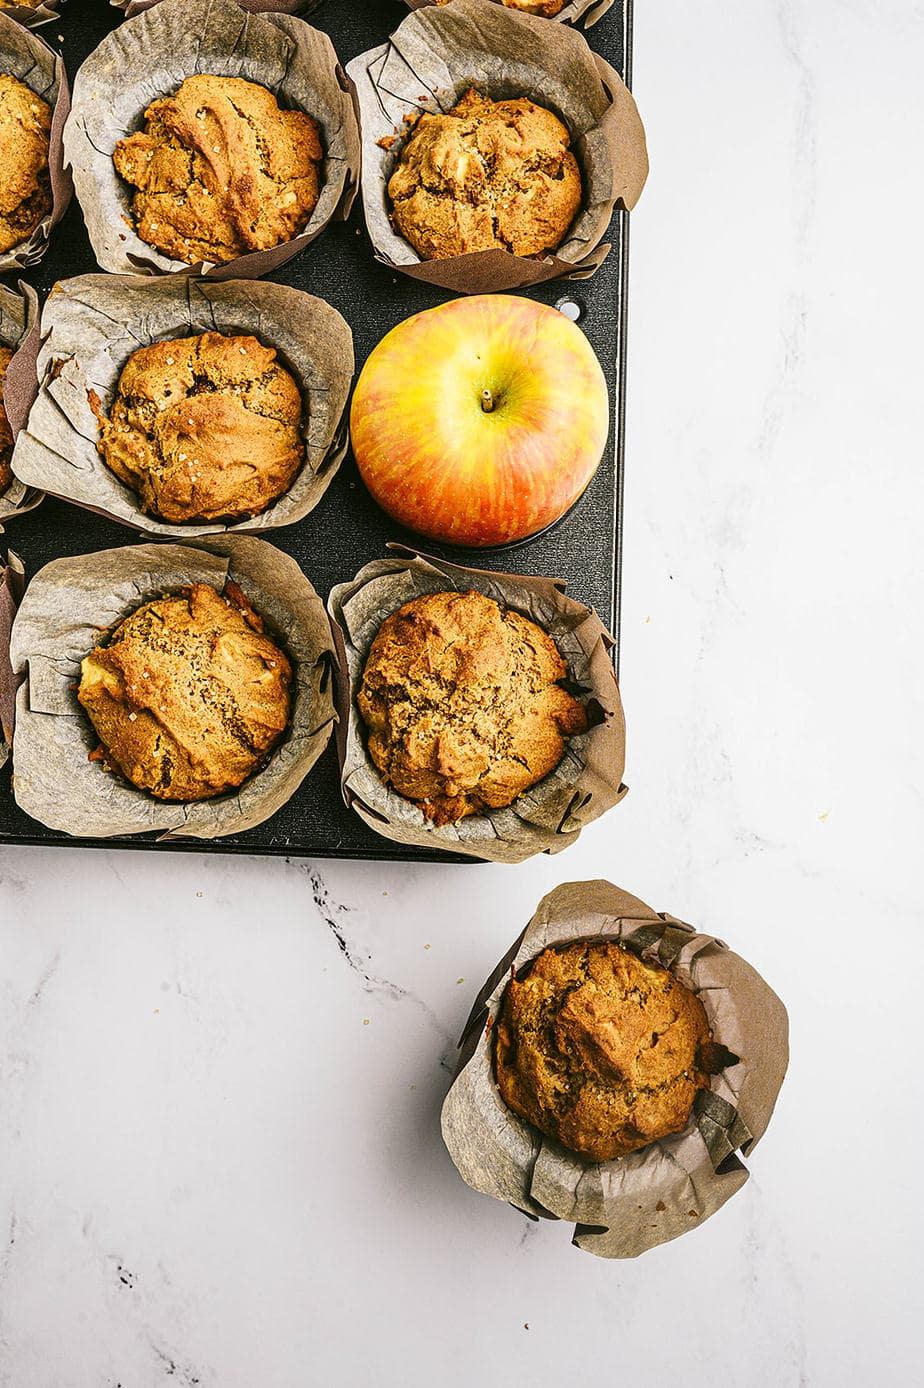 Overhead image: parchment lined muffins in a muffin tin. One muffin is out of its place, off to the side and a whole apple takes its place in the tin.